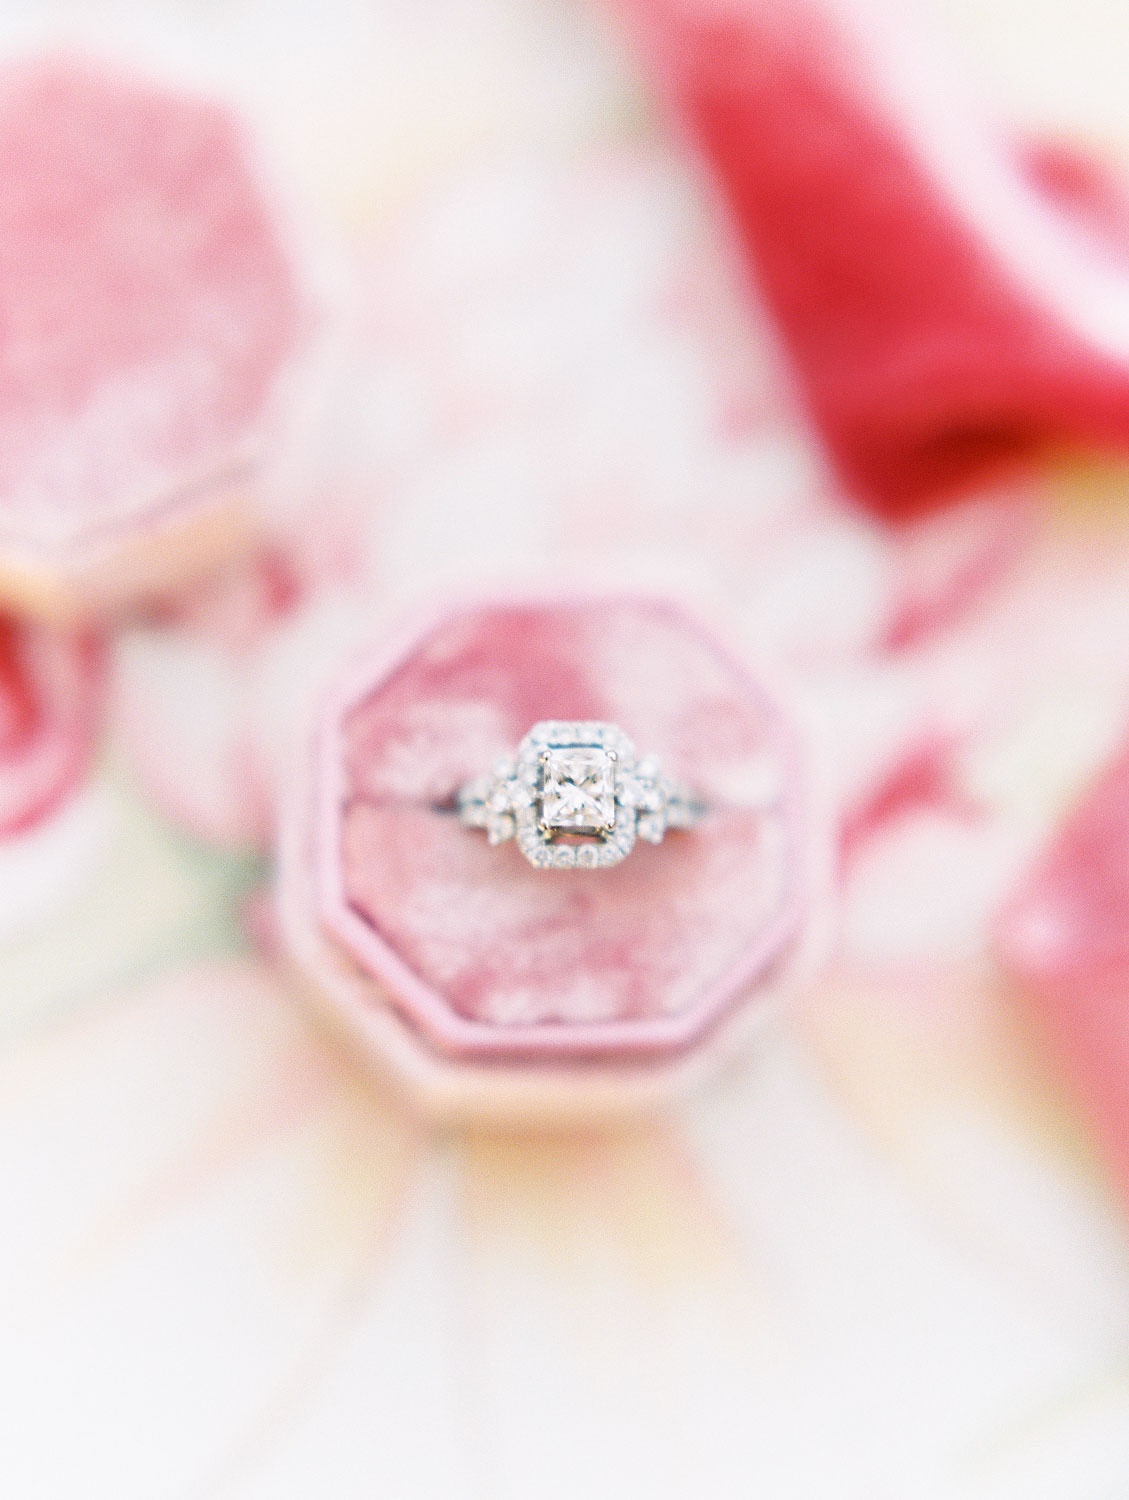 Cushion cut diamond engagement ring with large halo casing in a pink velvet octagon ring box, film Beverly Hills Hotel Engagement Photos by Cavin Elizabeth Photography